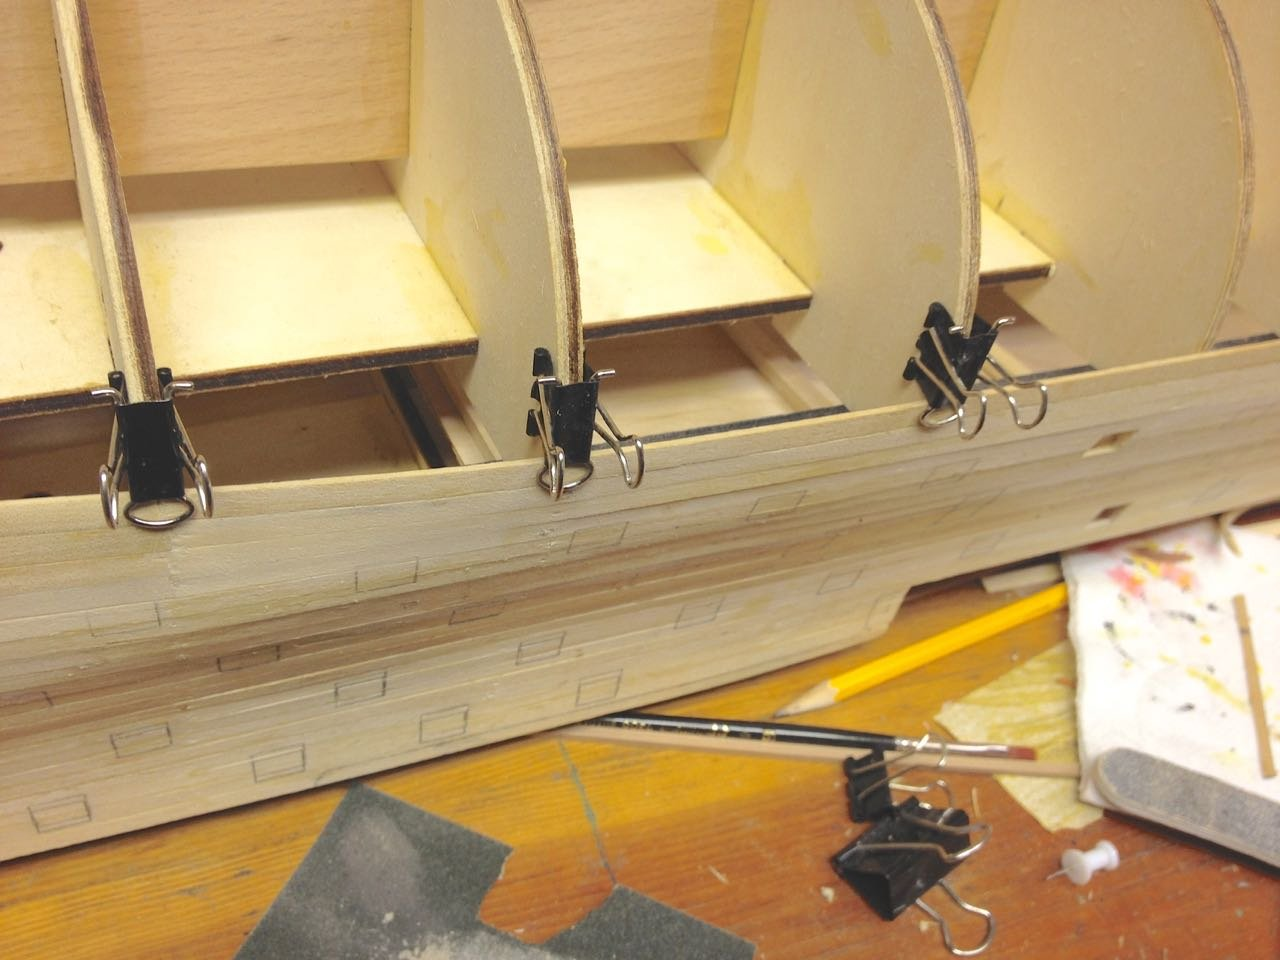 Simple Planking Clamp from Binder Clips | Ship Modeler